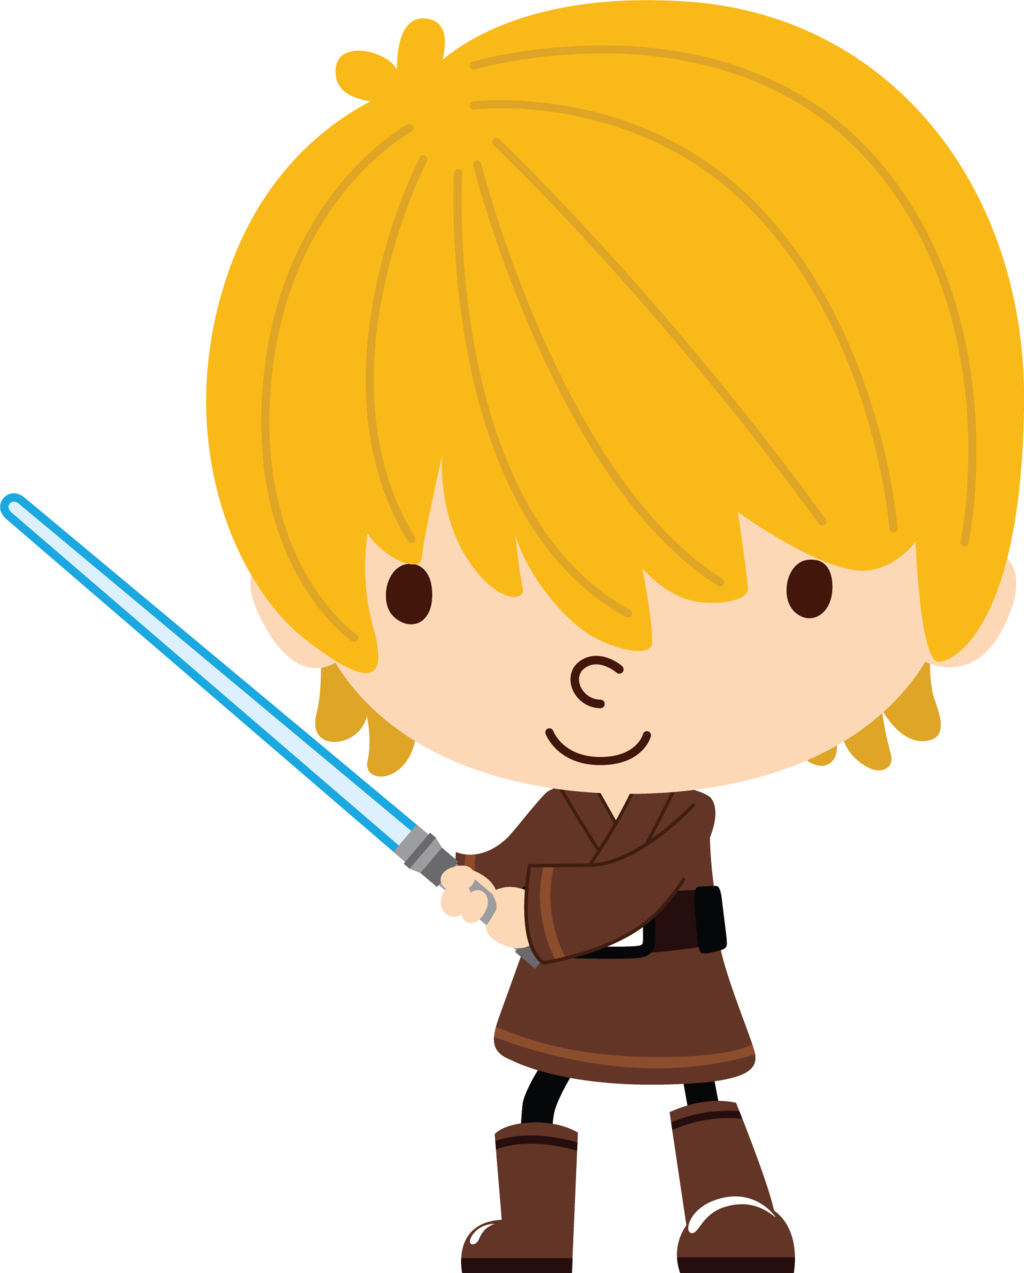 Star Wars clipart #10, Download drawings